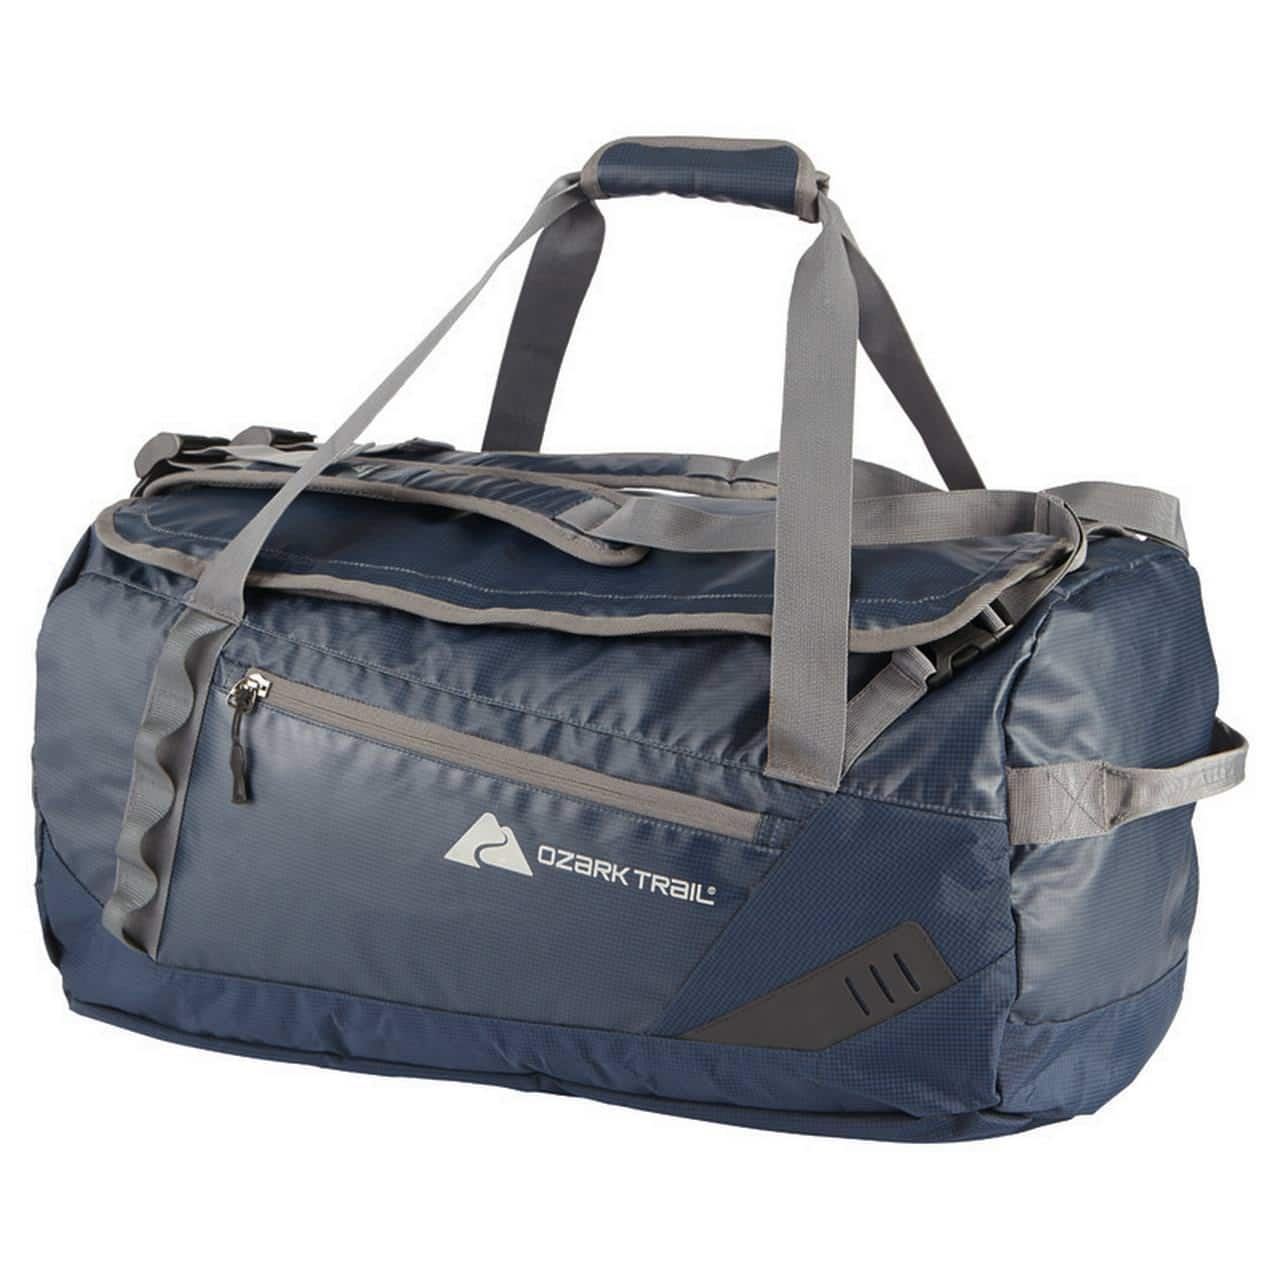 380939922e86 Ozark Trail 50L Duffel Bag - Slickdeals.net